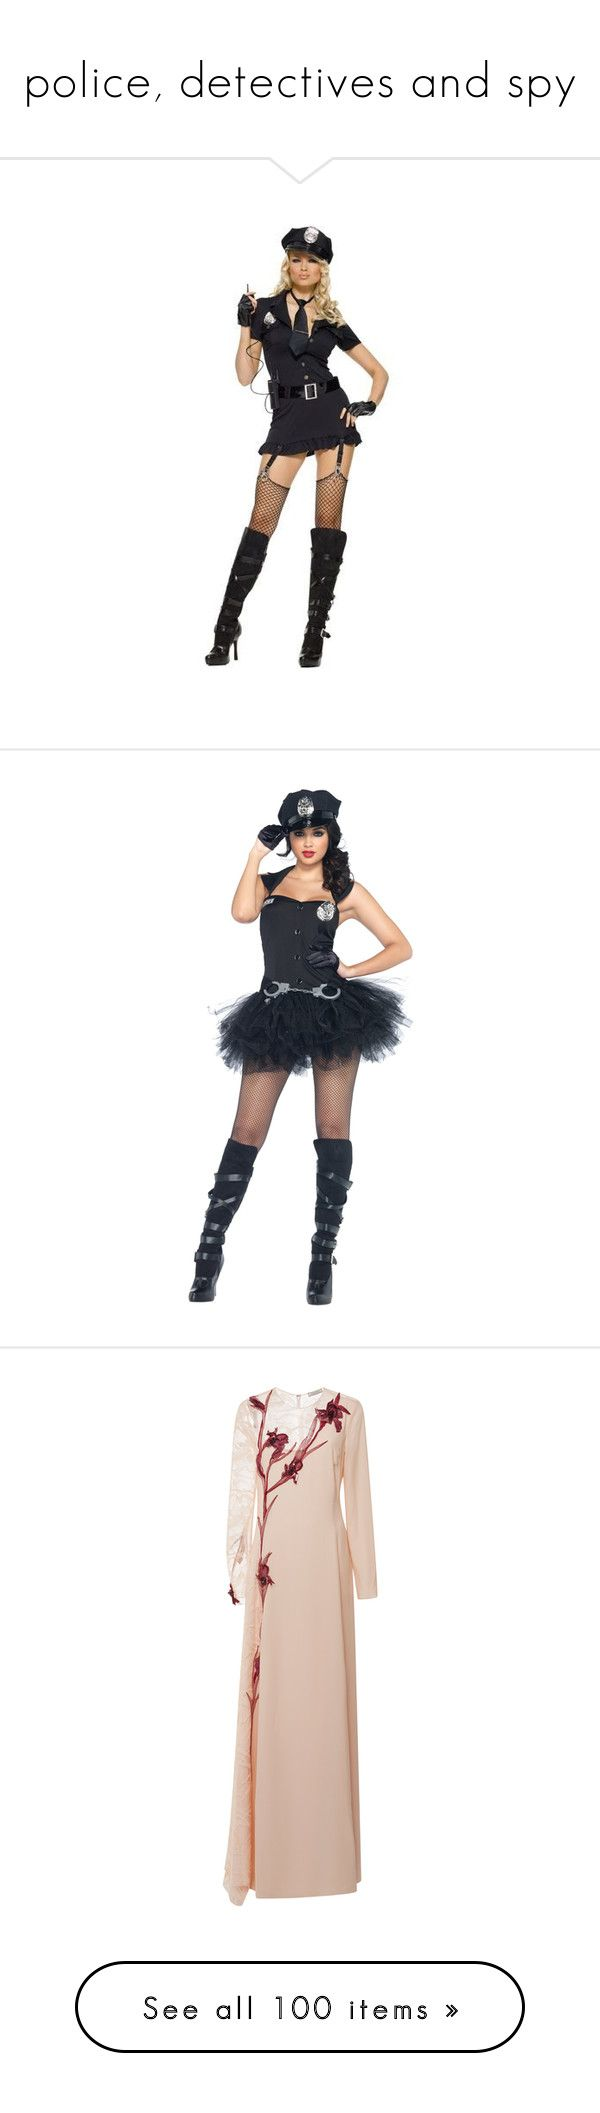 """""""police, detectives and spy"""" by hogwartsdragoness ❤ liked on Polyvore featuring costumes, costume, halloween costumes, police officer costume, sexy halloween costumes, sexy police officer halloween costume, cop halloween costume, sexy black costume, sexy cop halloween costume and police woman costume"""